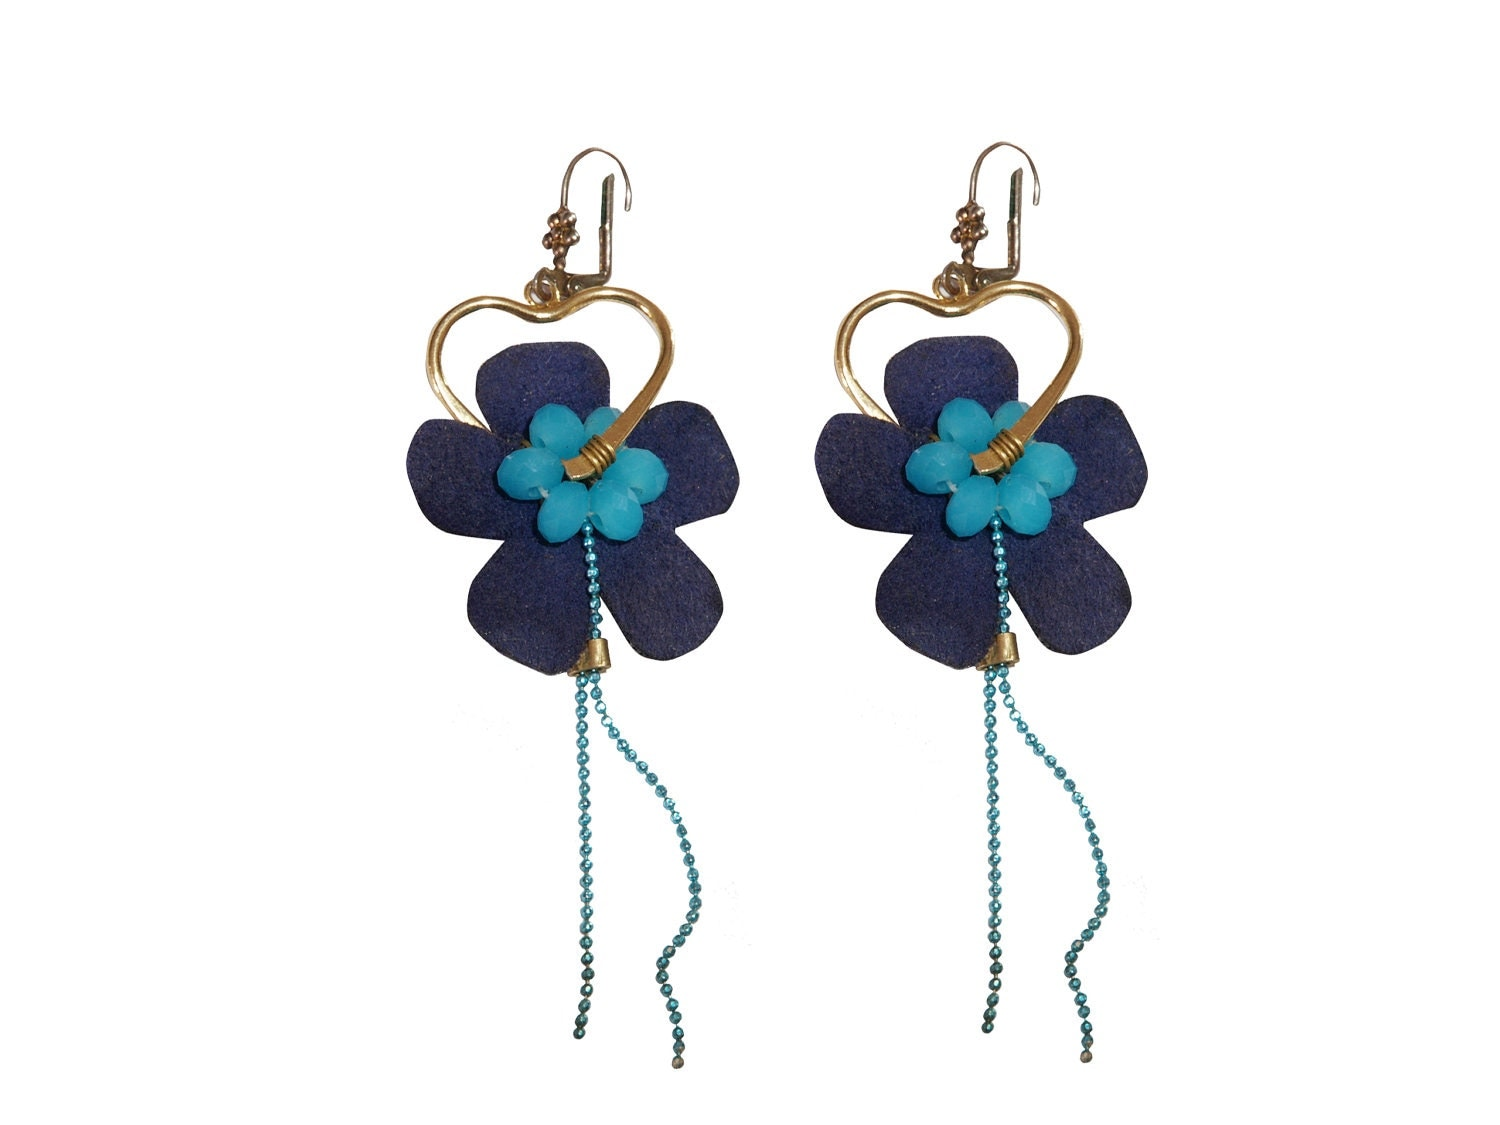 24K Gold Plated Earrings Hanging Suede Flower with Blue Quartz Crystal Beads